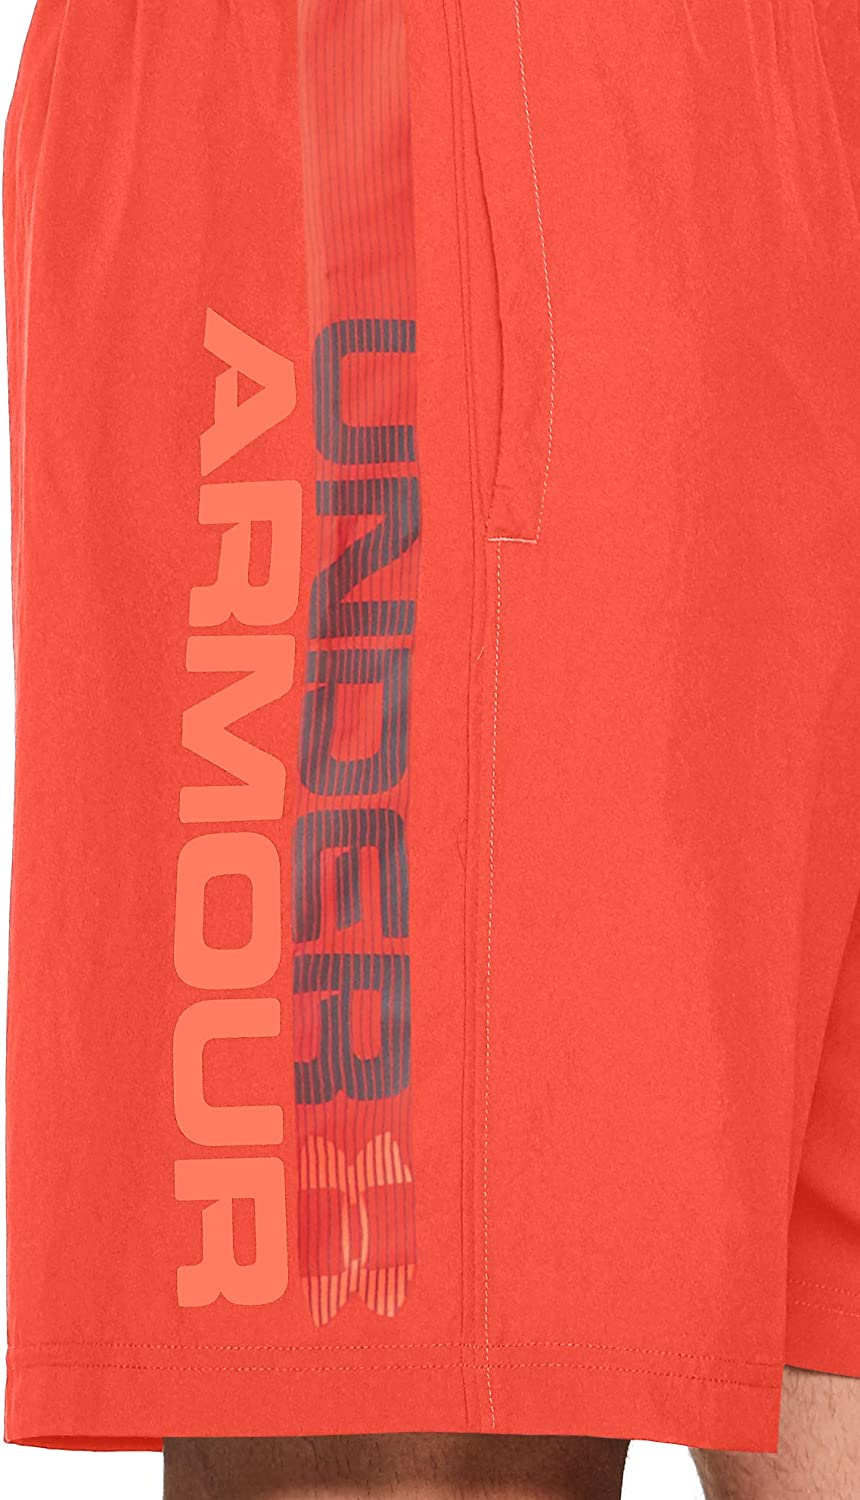 Under Armour Mens Woven Graphic Wordmark Mens Active Shorts Breathable and Modern Mens Gym Wear